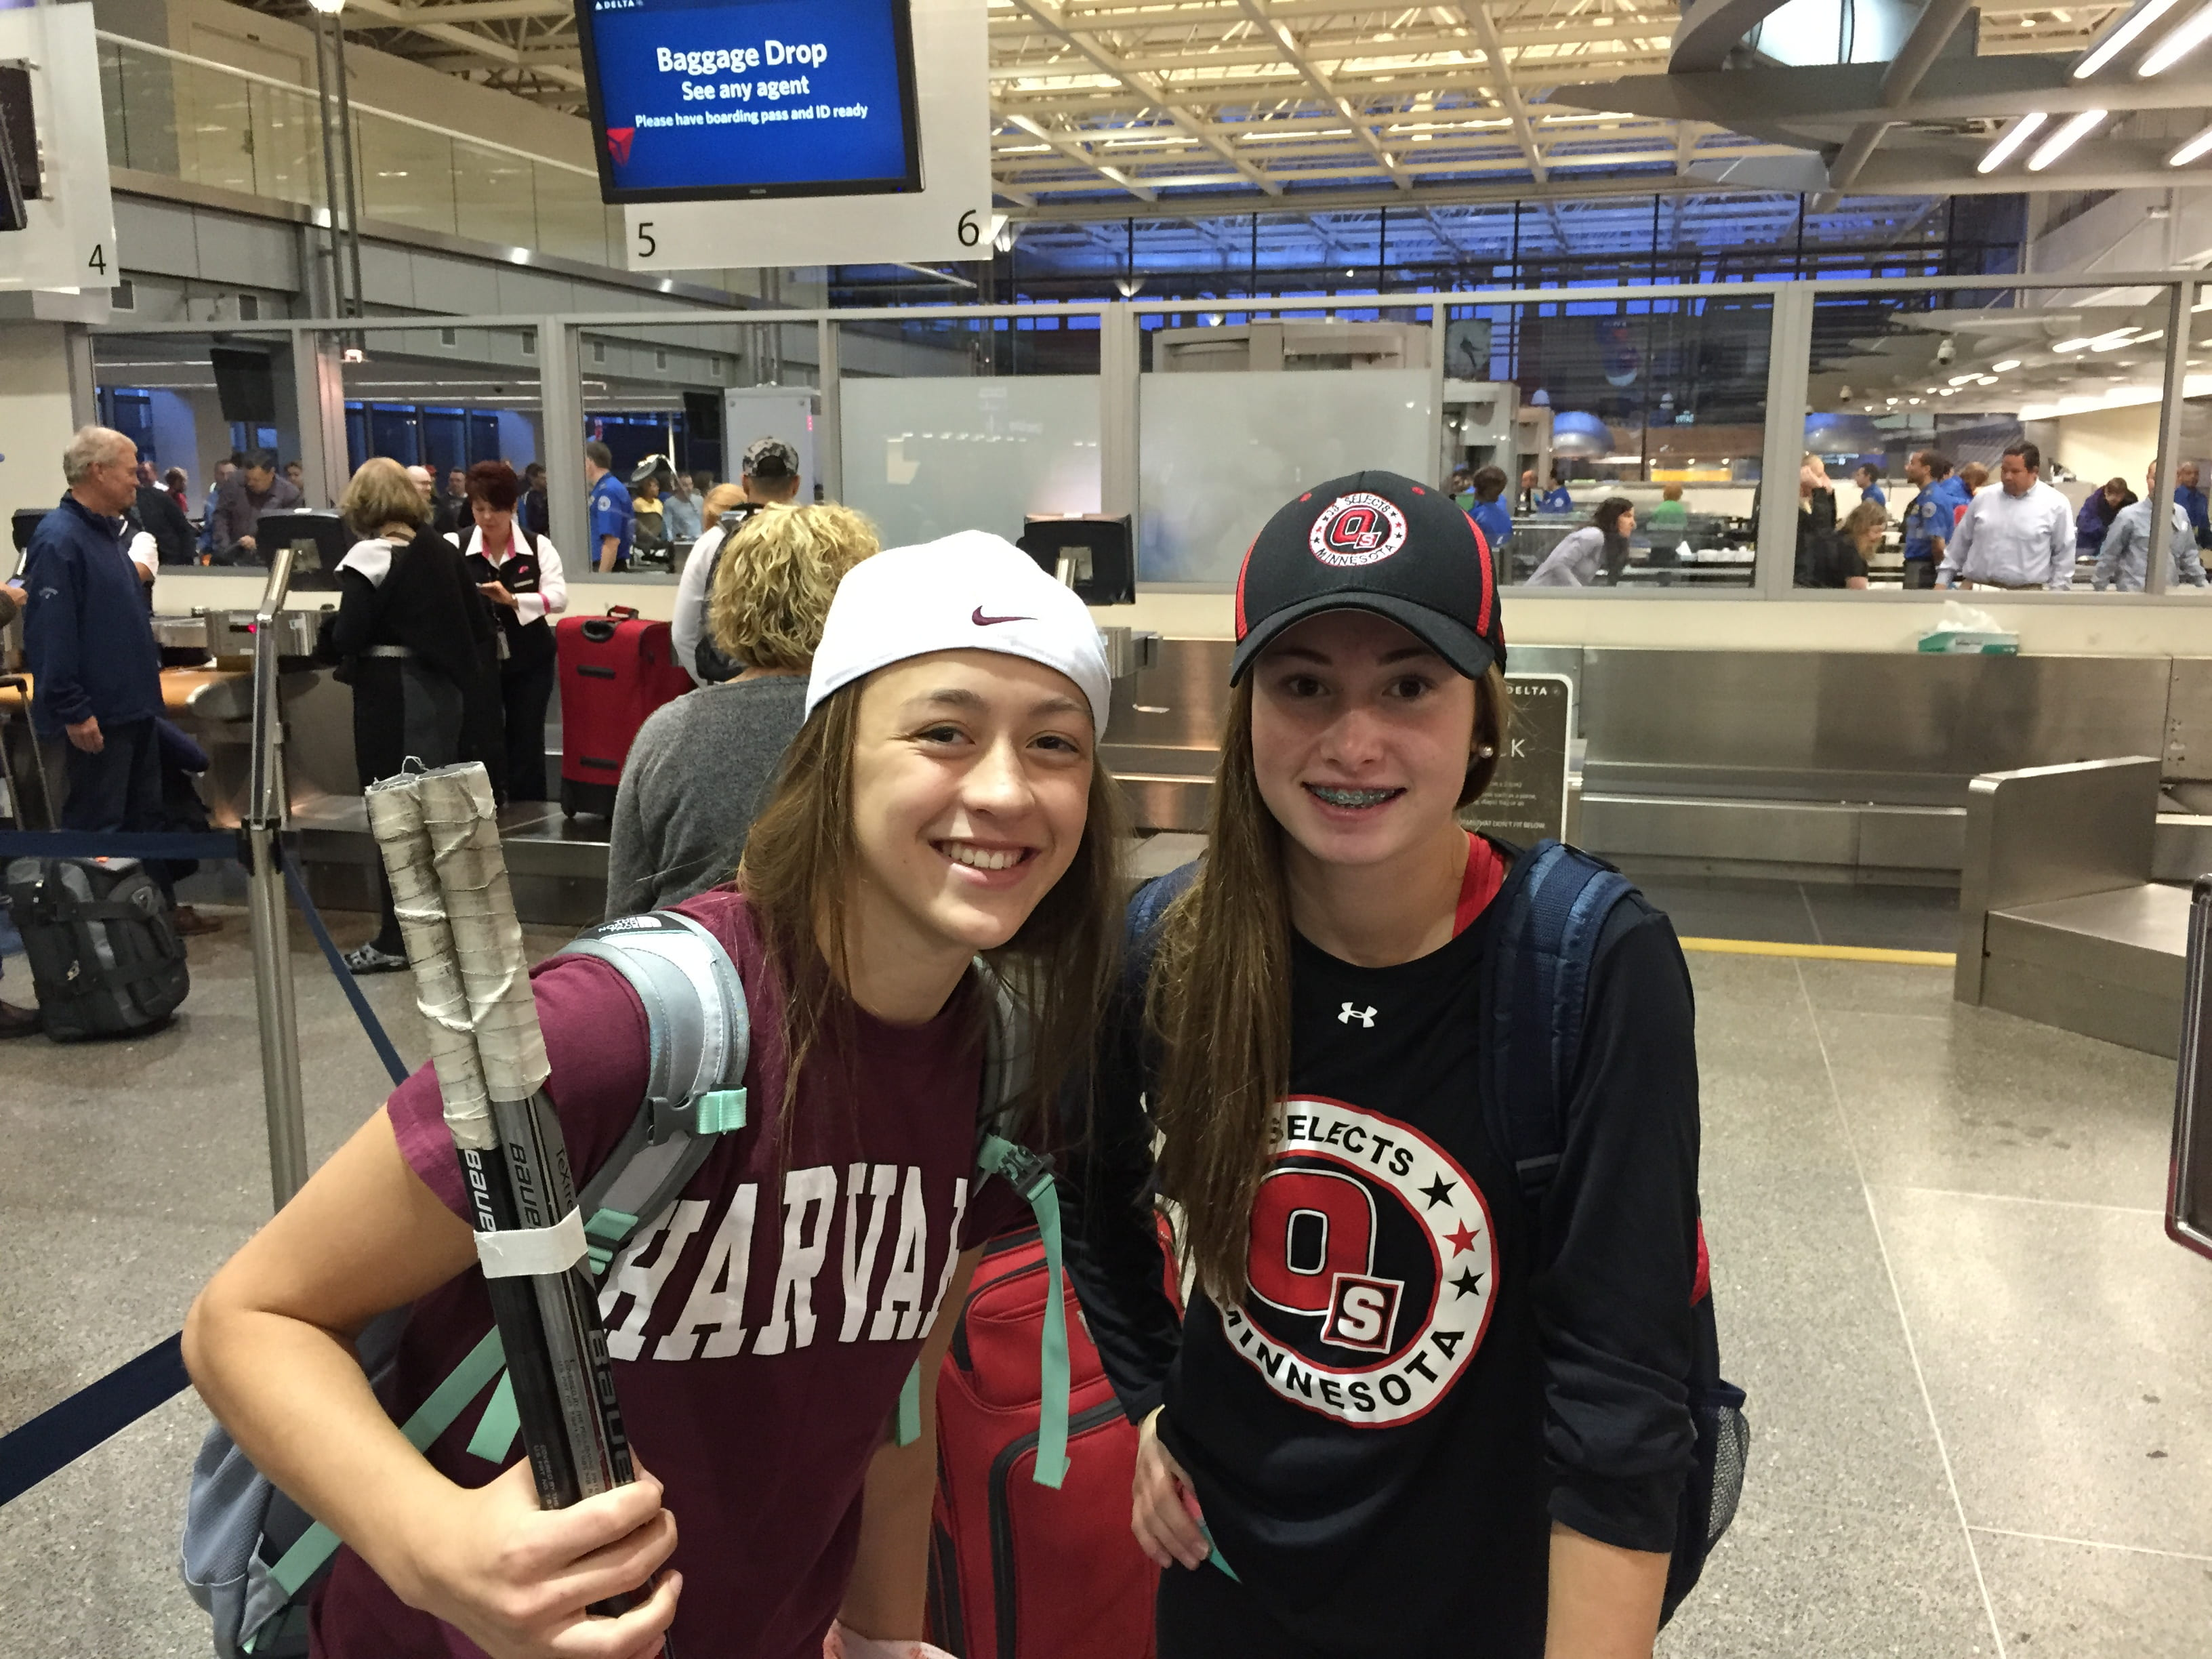 Ramsey Parent and Gabby Rosenthal pose together inside an airport in hockey attire